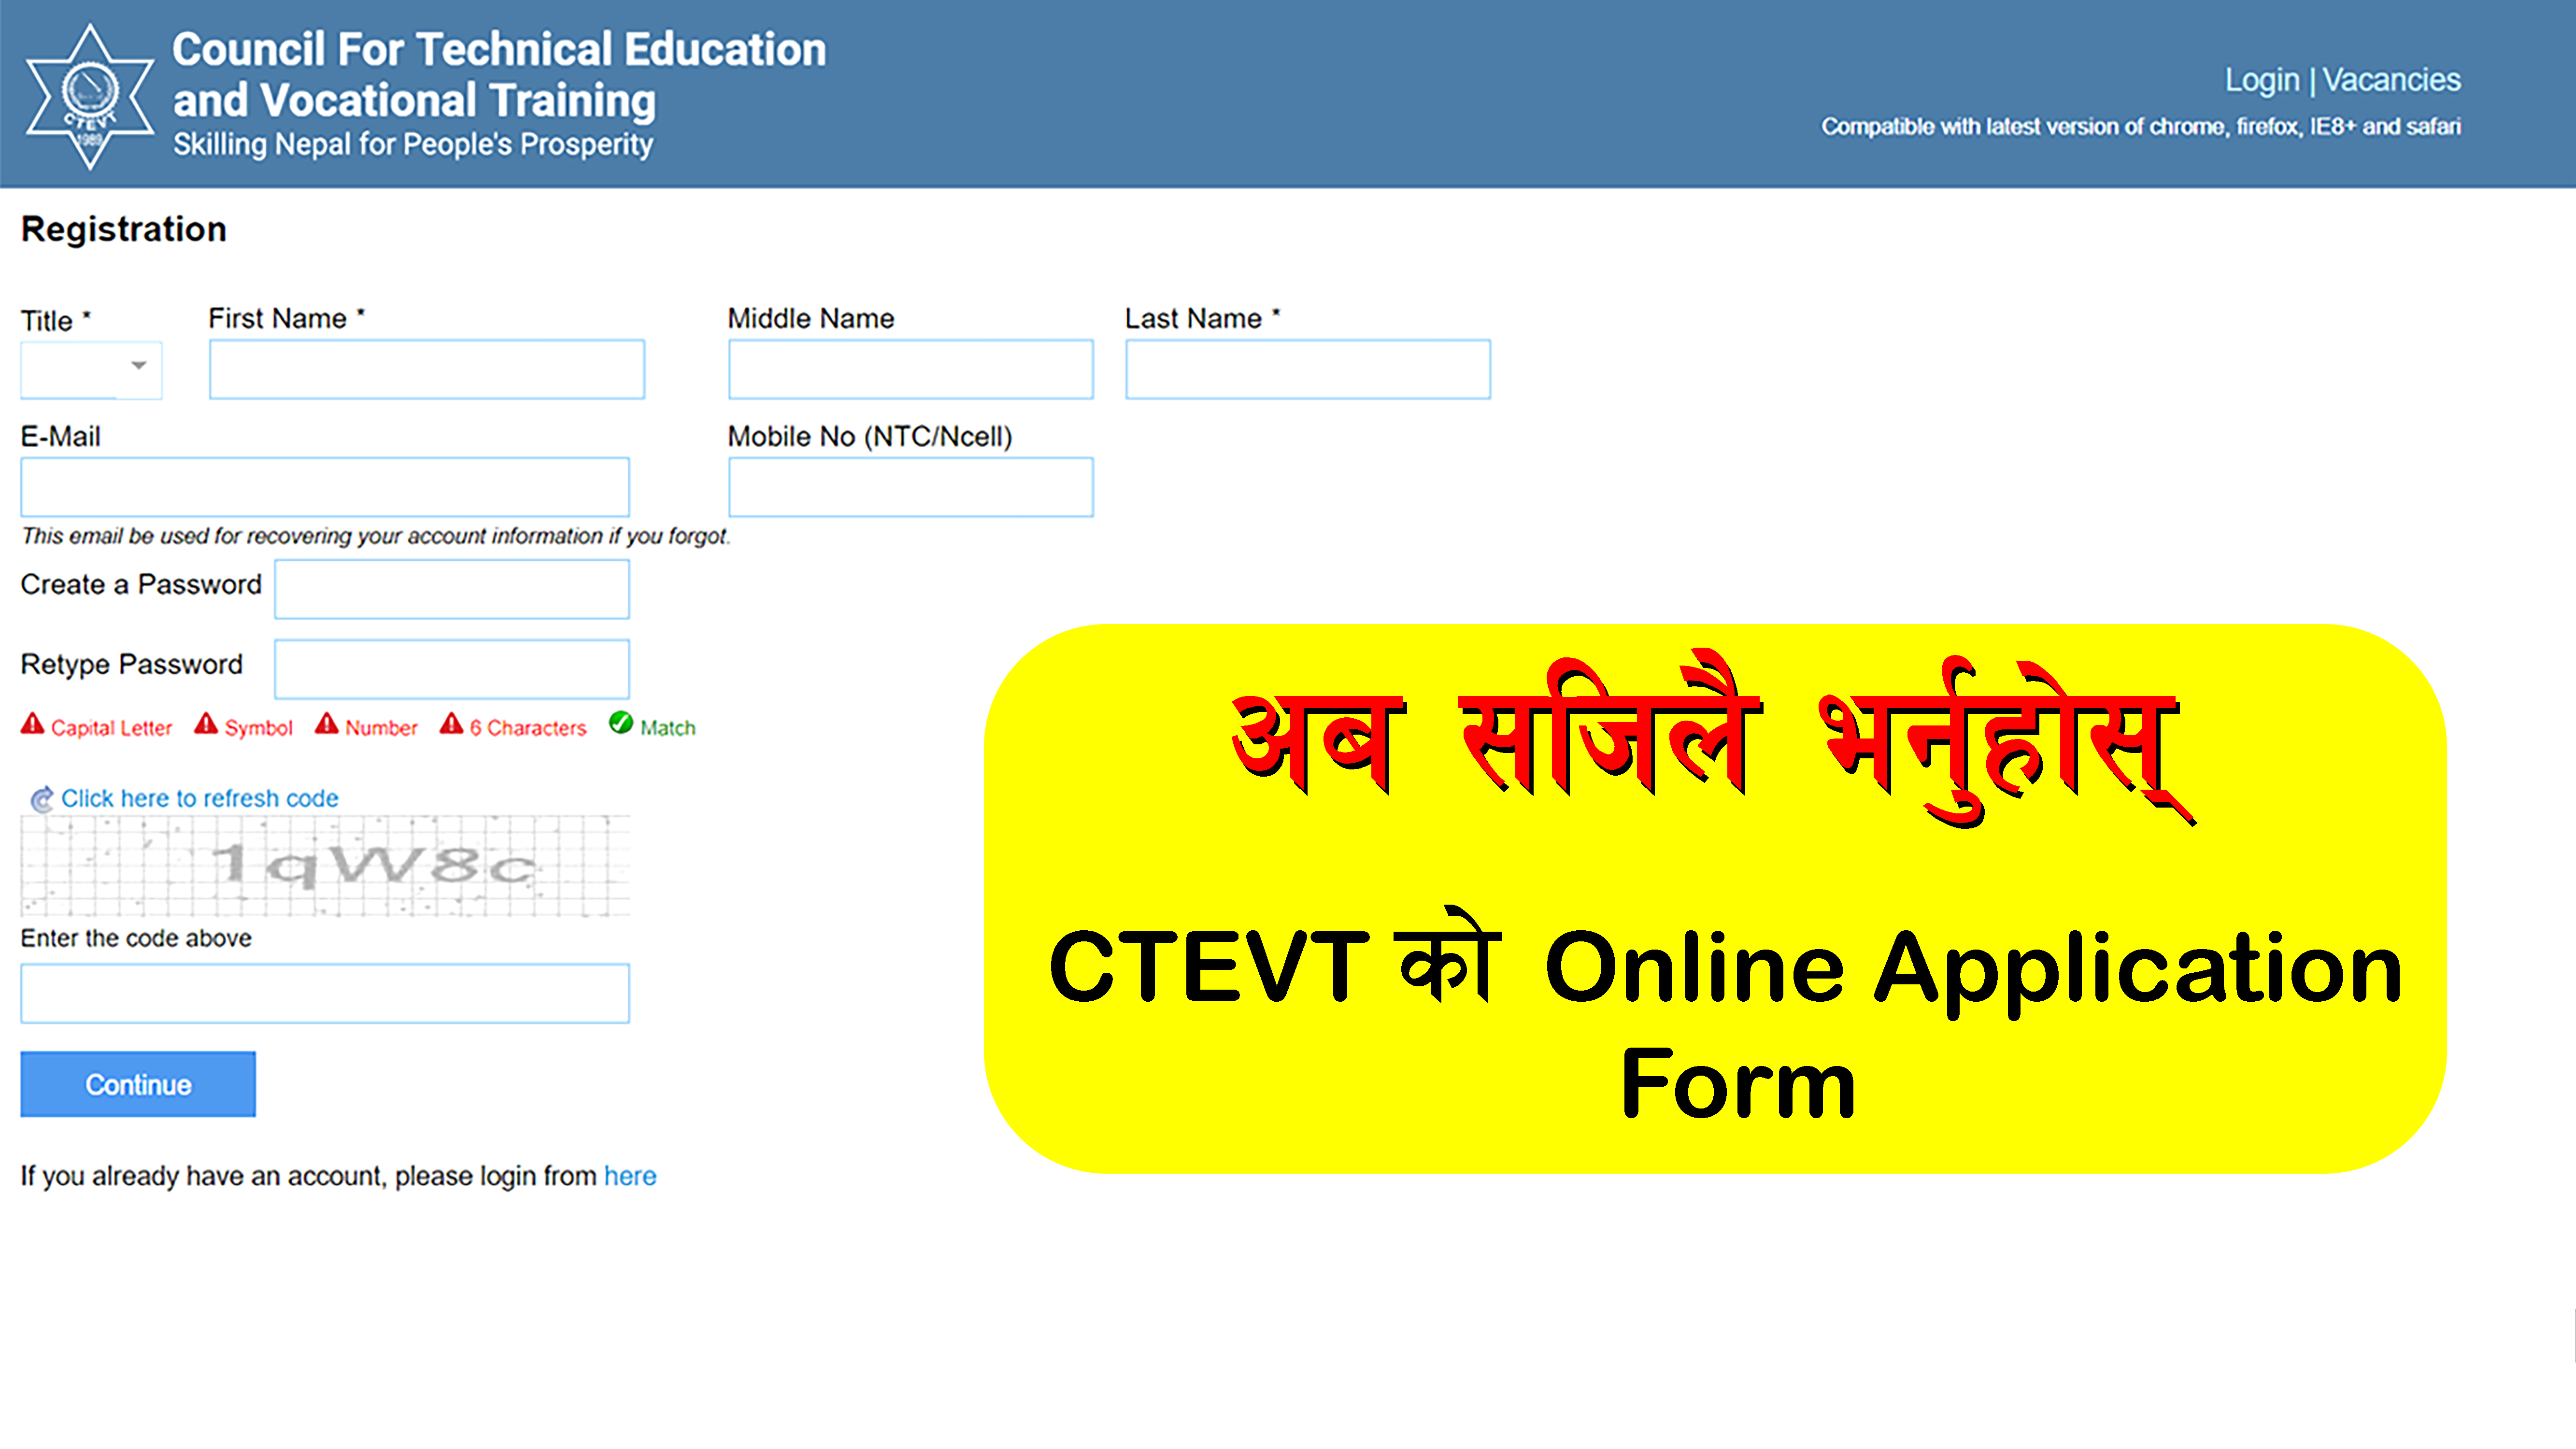 You Can Submit CTEVT online application form in go to CTEVT Official website: www.ctevt.org.np. CTEVT online jobs application wwwobs.ctevt.org.np